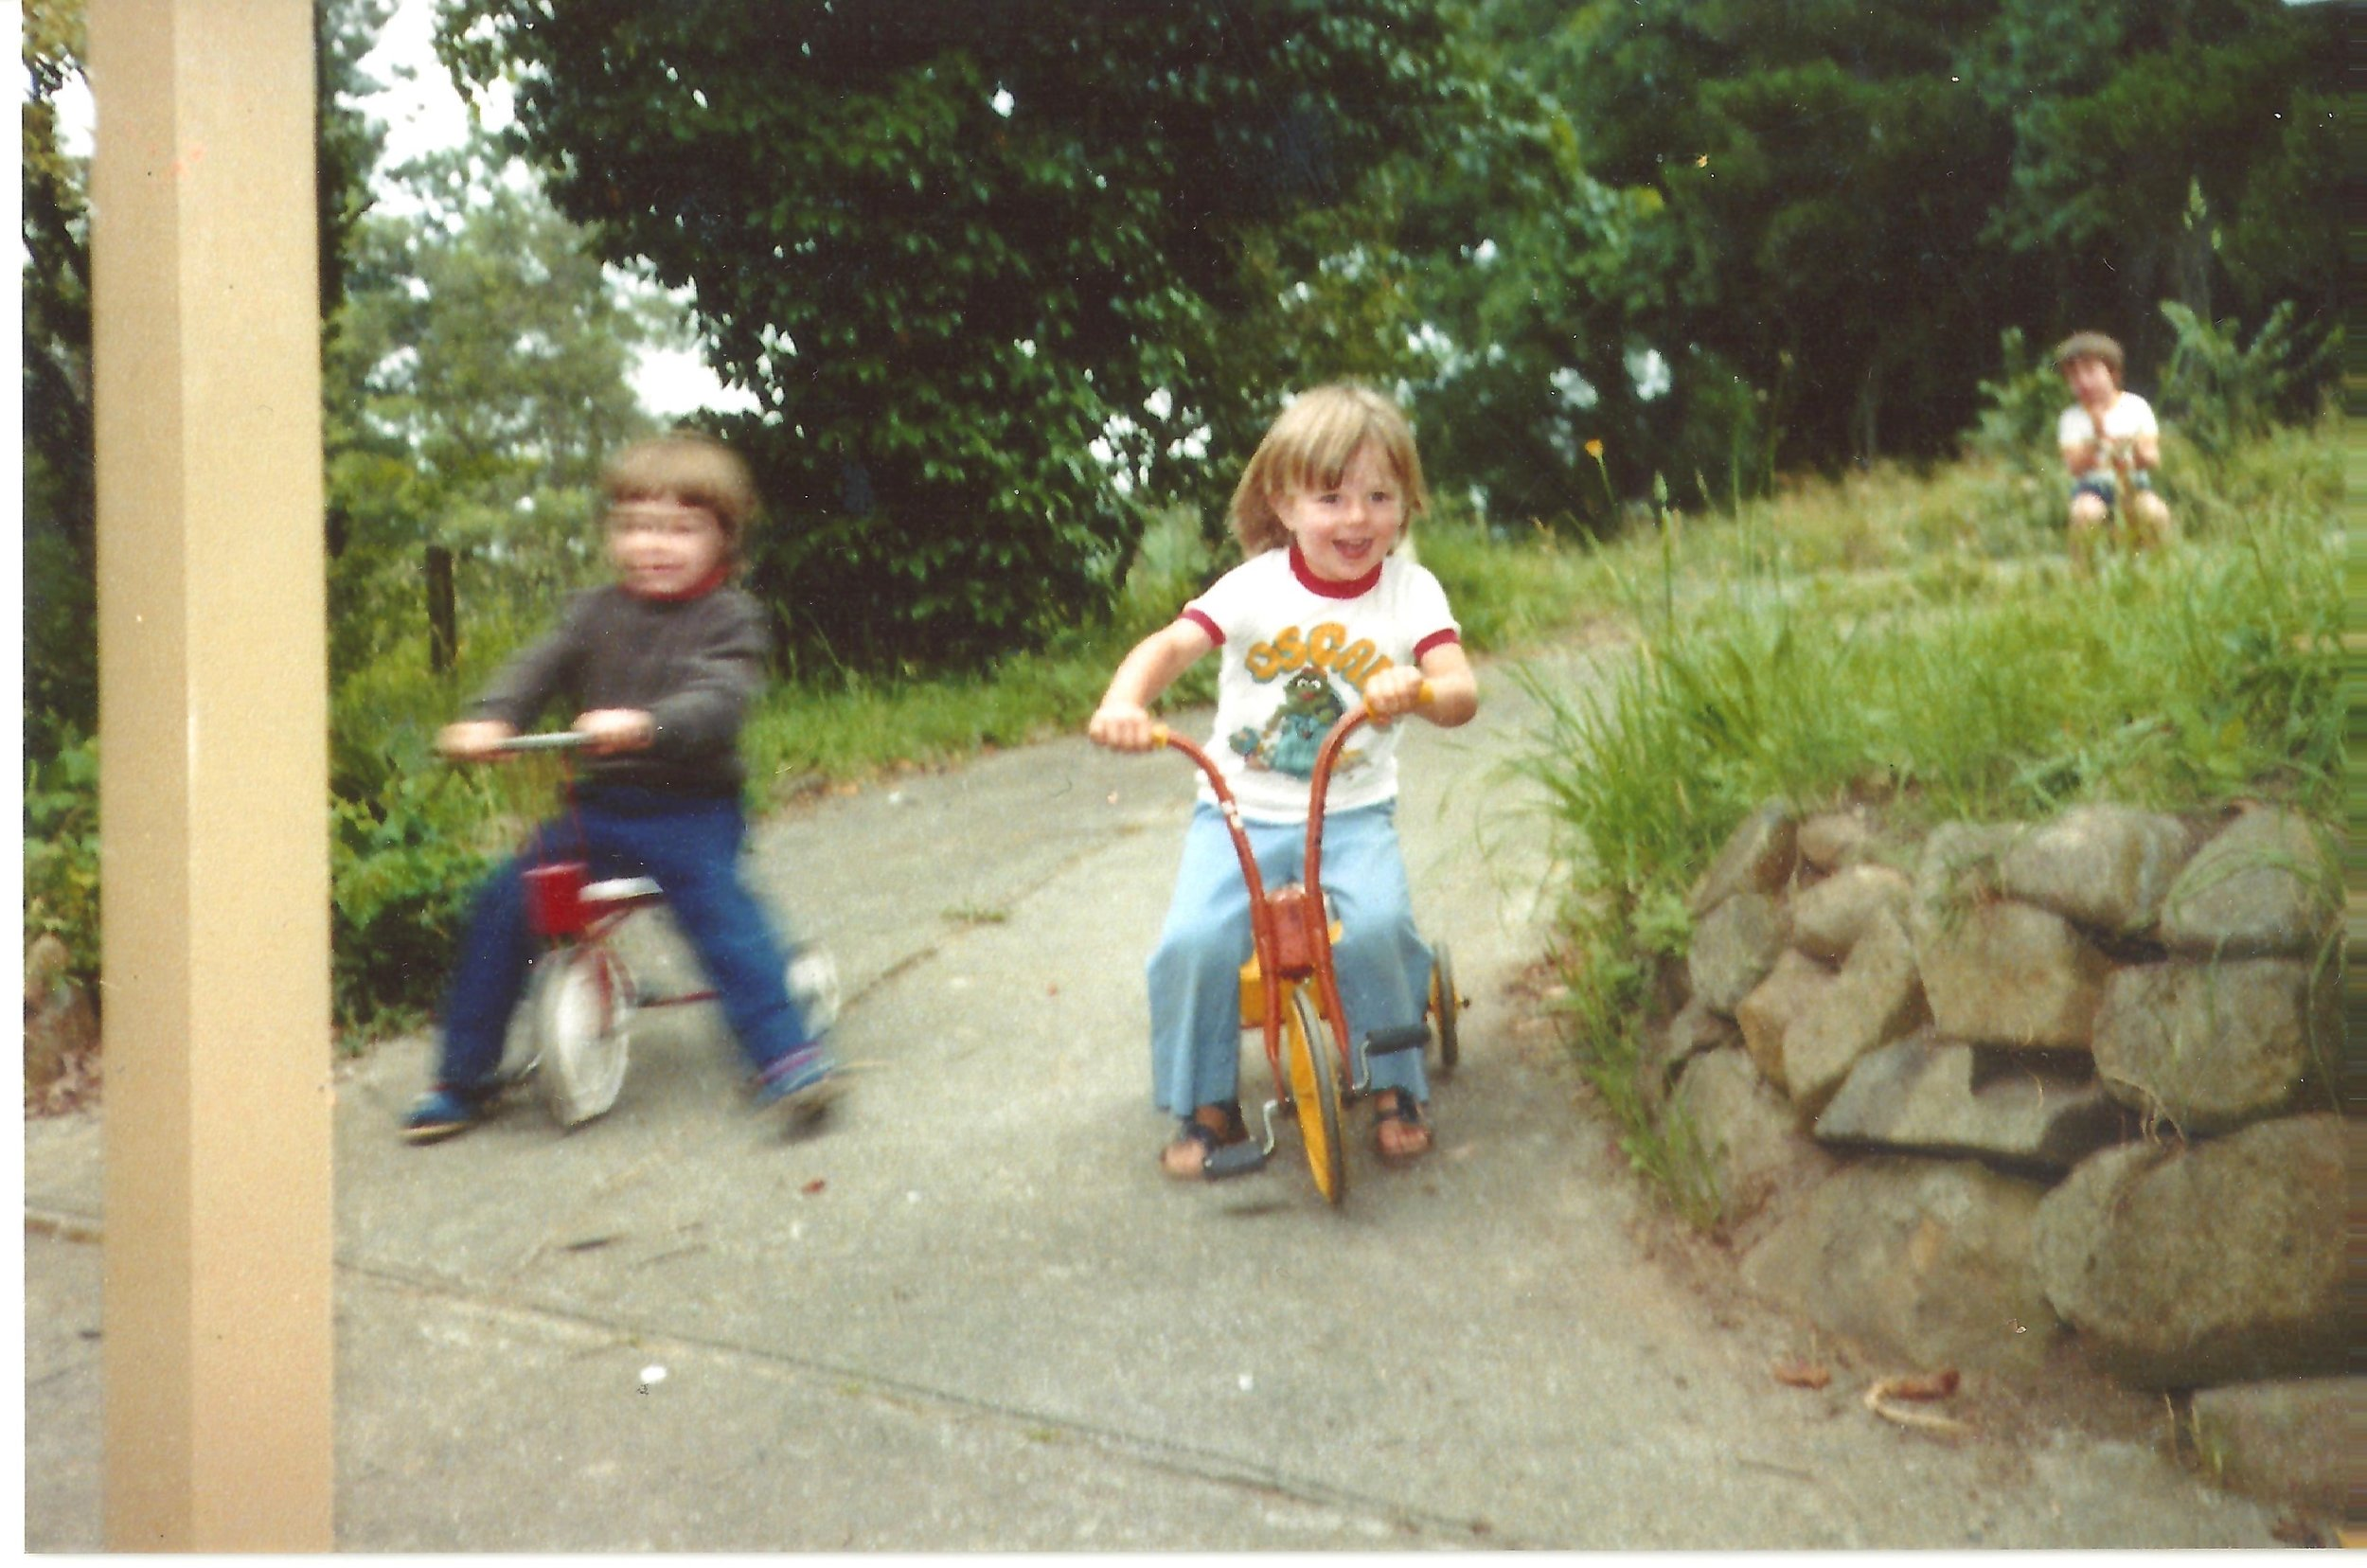 BLPC Sharon King 1981 or 82 Original Playgroup Members  Child on bike Shaun King.jpeg